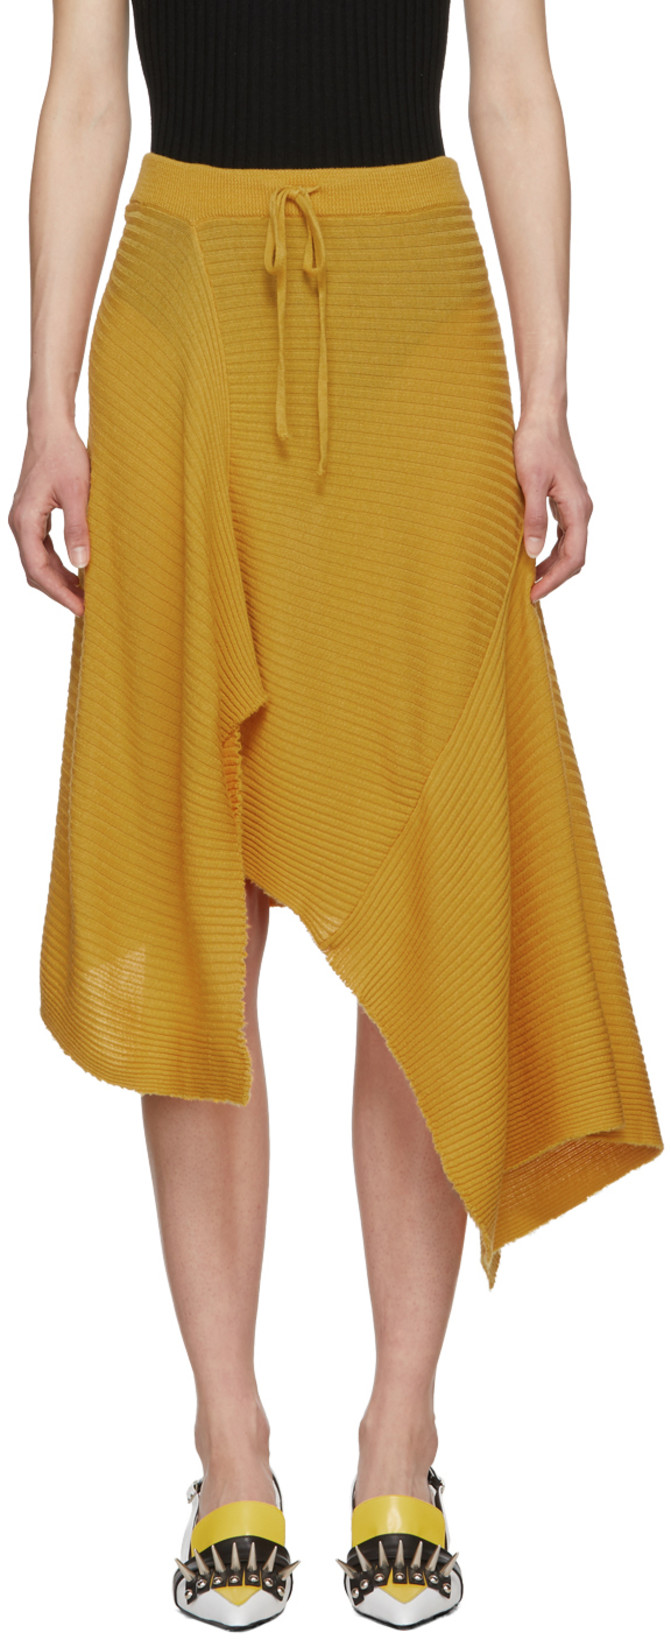 Marques'Almeida  27 Midi Skirts You Need in Your Closet ASAP Marques Almeida Draped Skirt